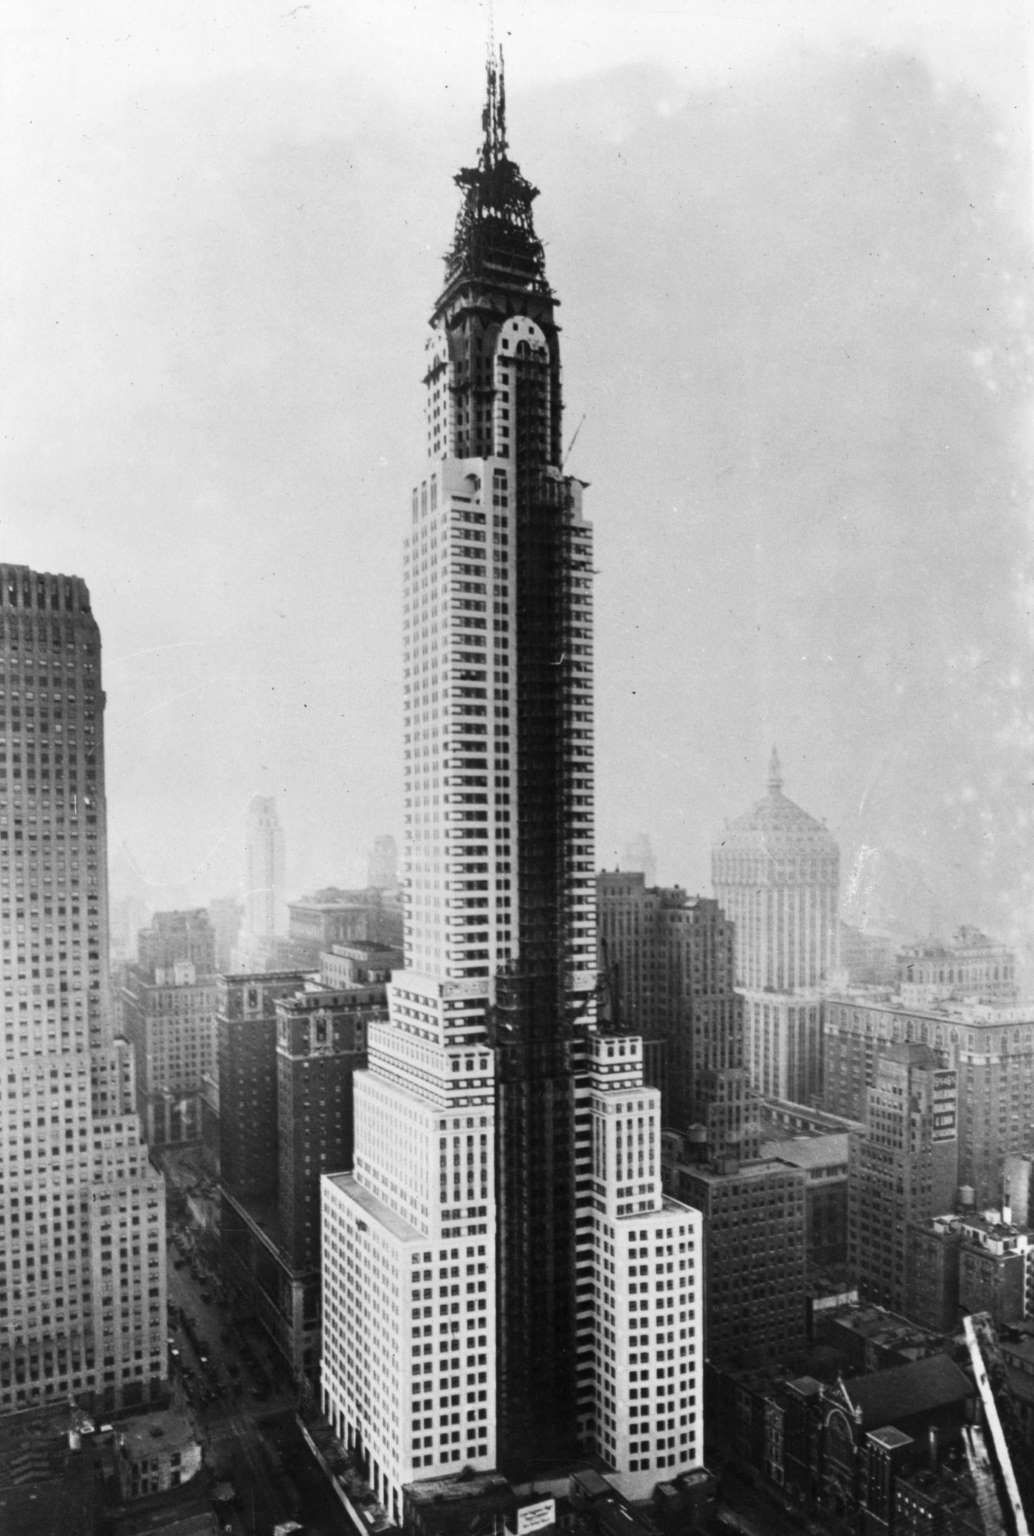 Last stages in the construction of the Chrysler building, New York. - Fox Photos/Getty Images